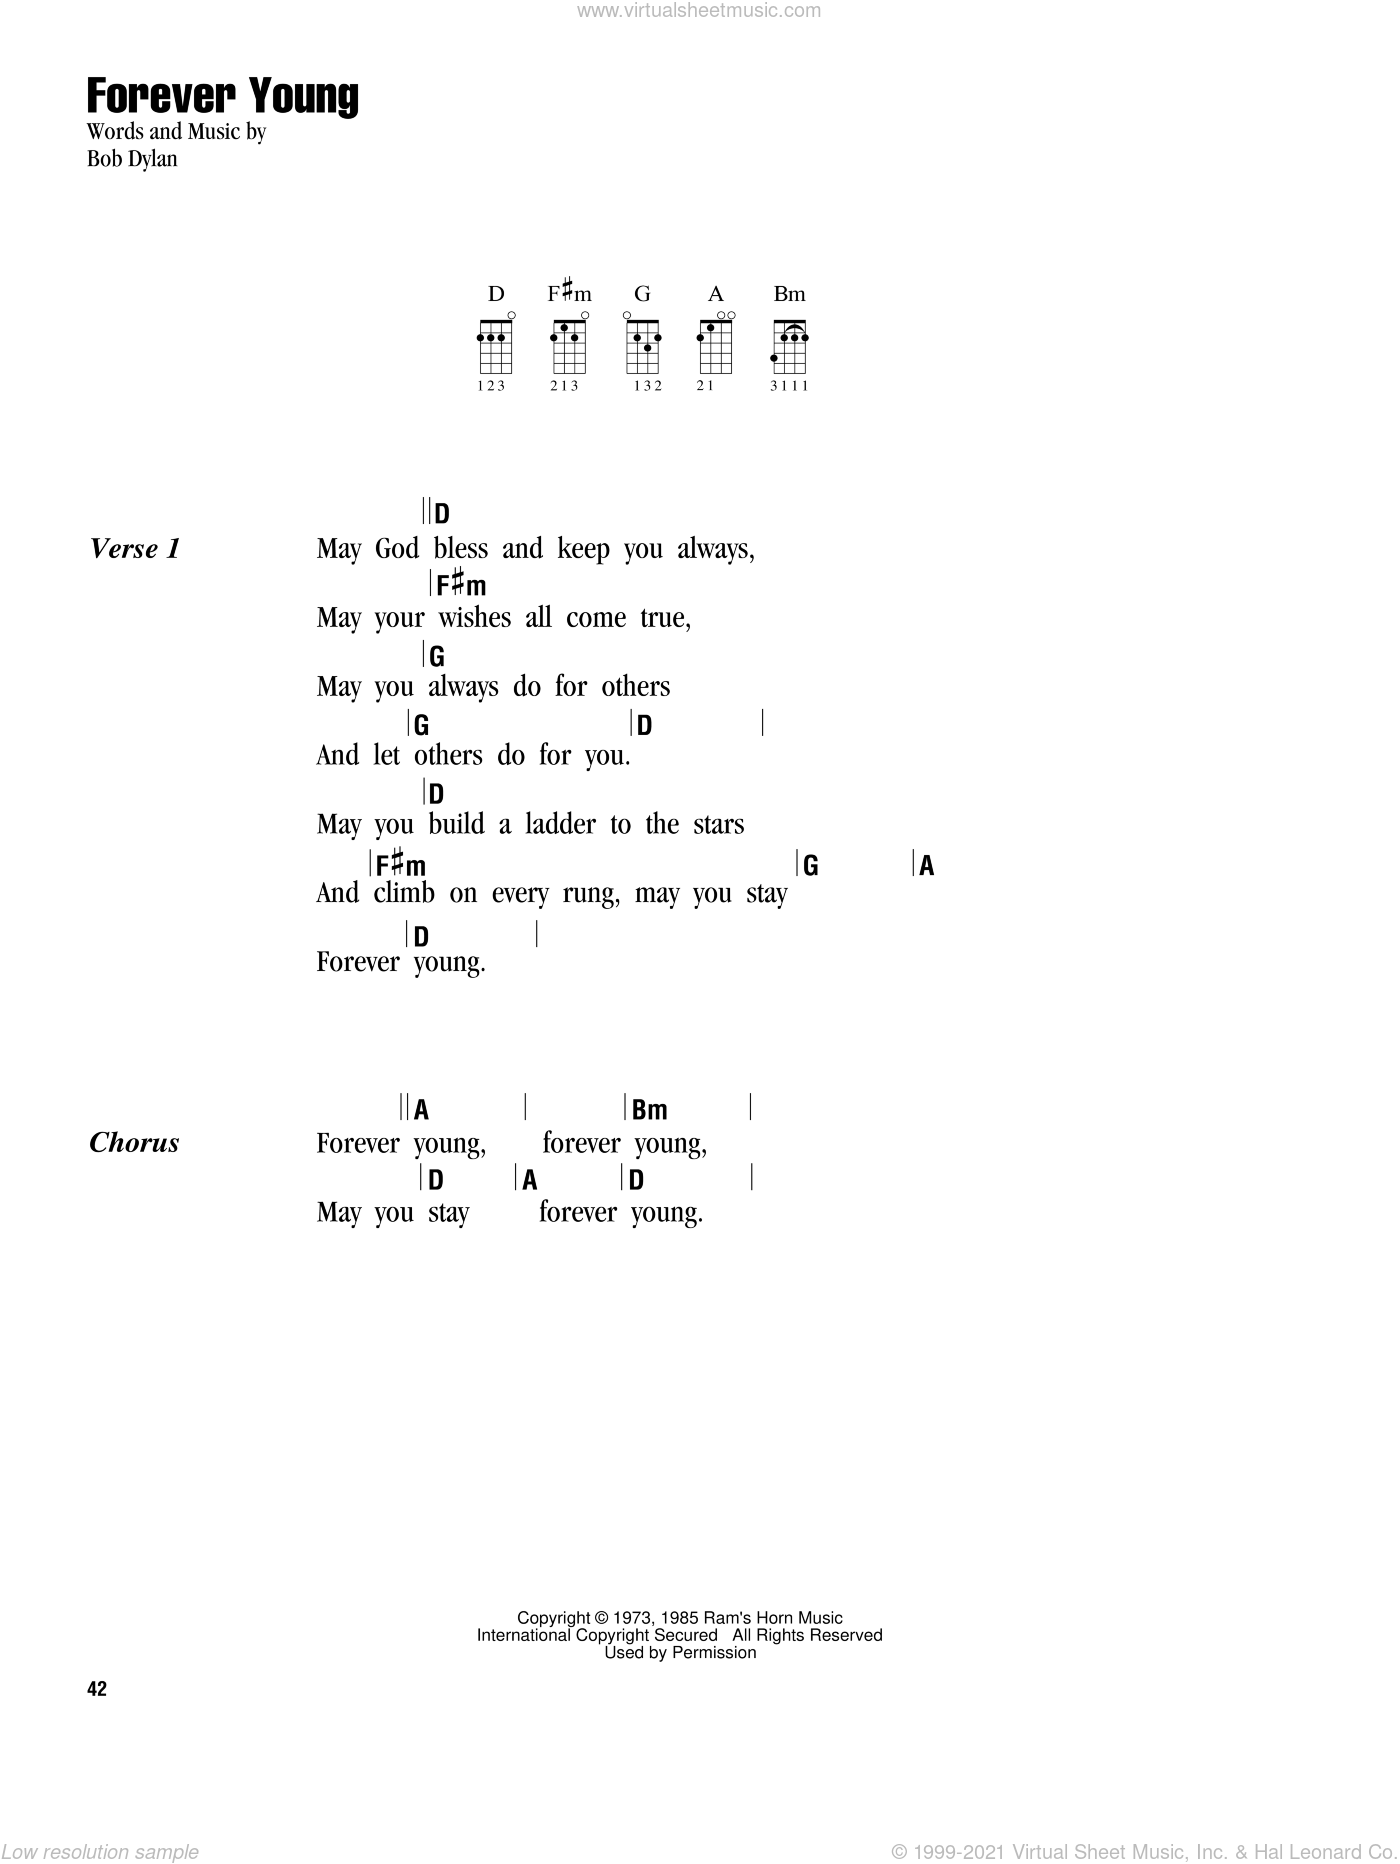 Dylan - Forever Young sheet music for ukulele (chords) [PDF]